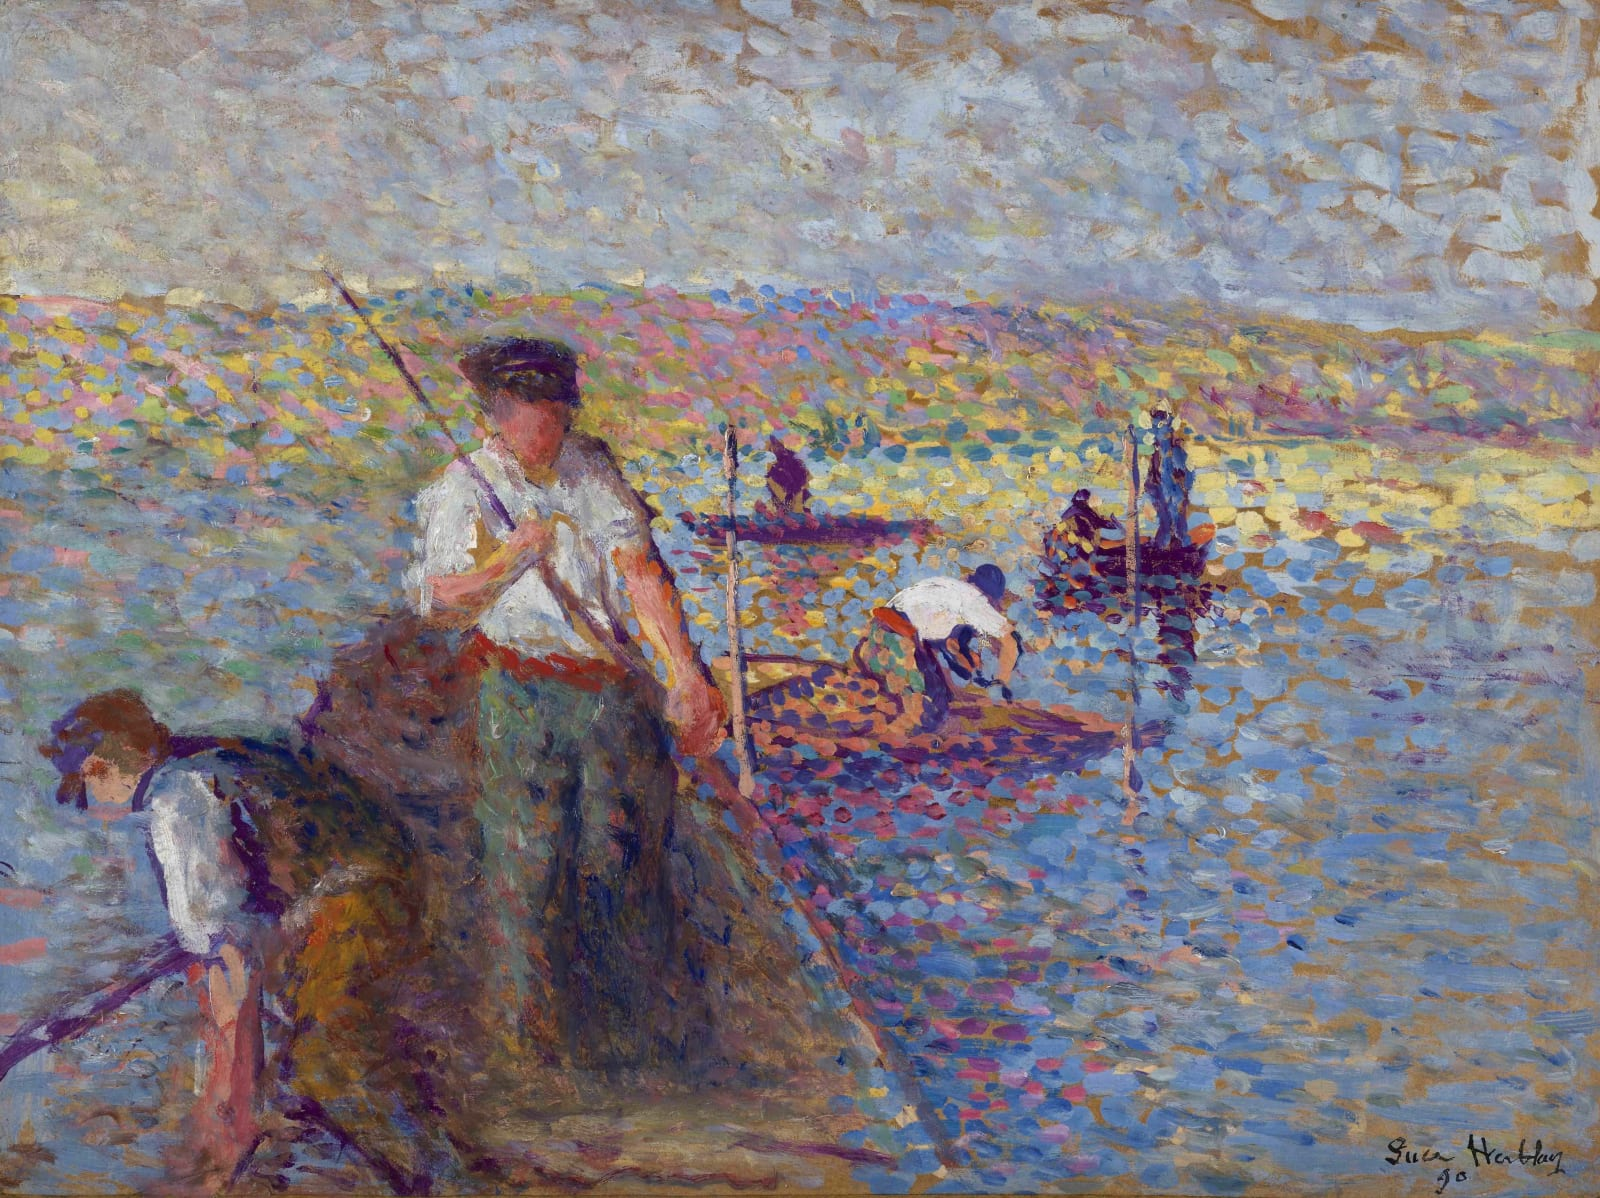 Maximilien Luce (1858-1941) Pécheurs sur la Seine à Herblay 1890 Oil on paper laid down on board 32.7 x 43.5 cm 12 7/8 x 17 1/8 inches Signed, dated, located lower right Luce Herblay '90 Sold by the gallery Archives Stoppenbach & Delestre